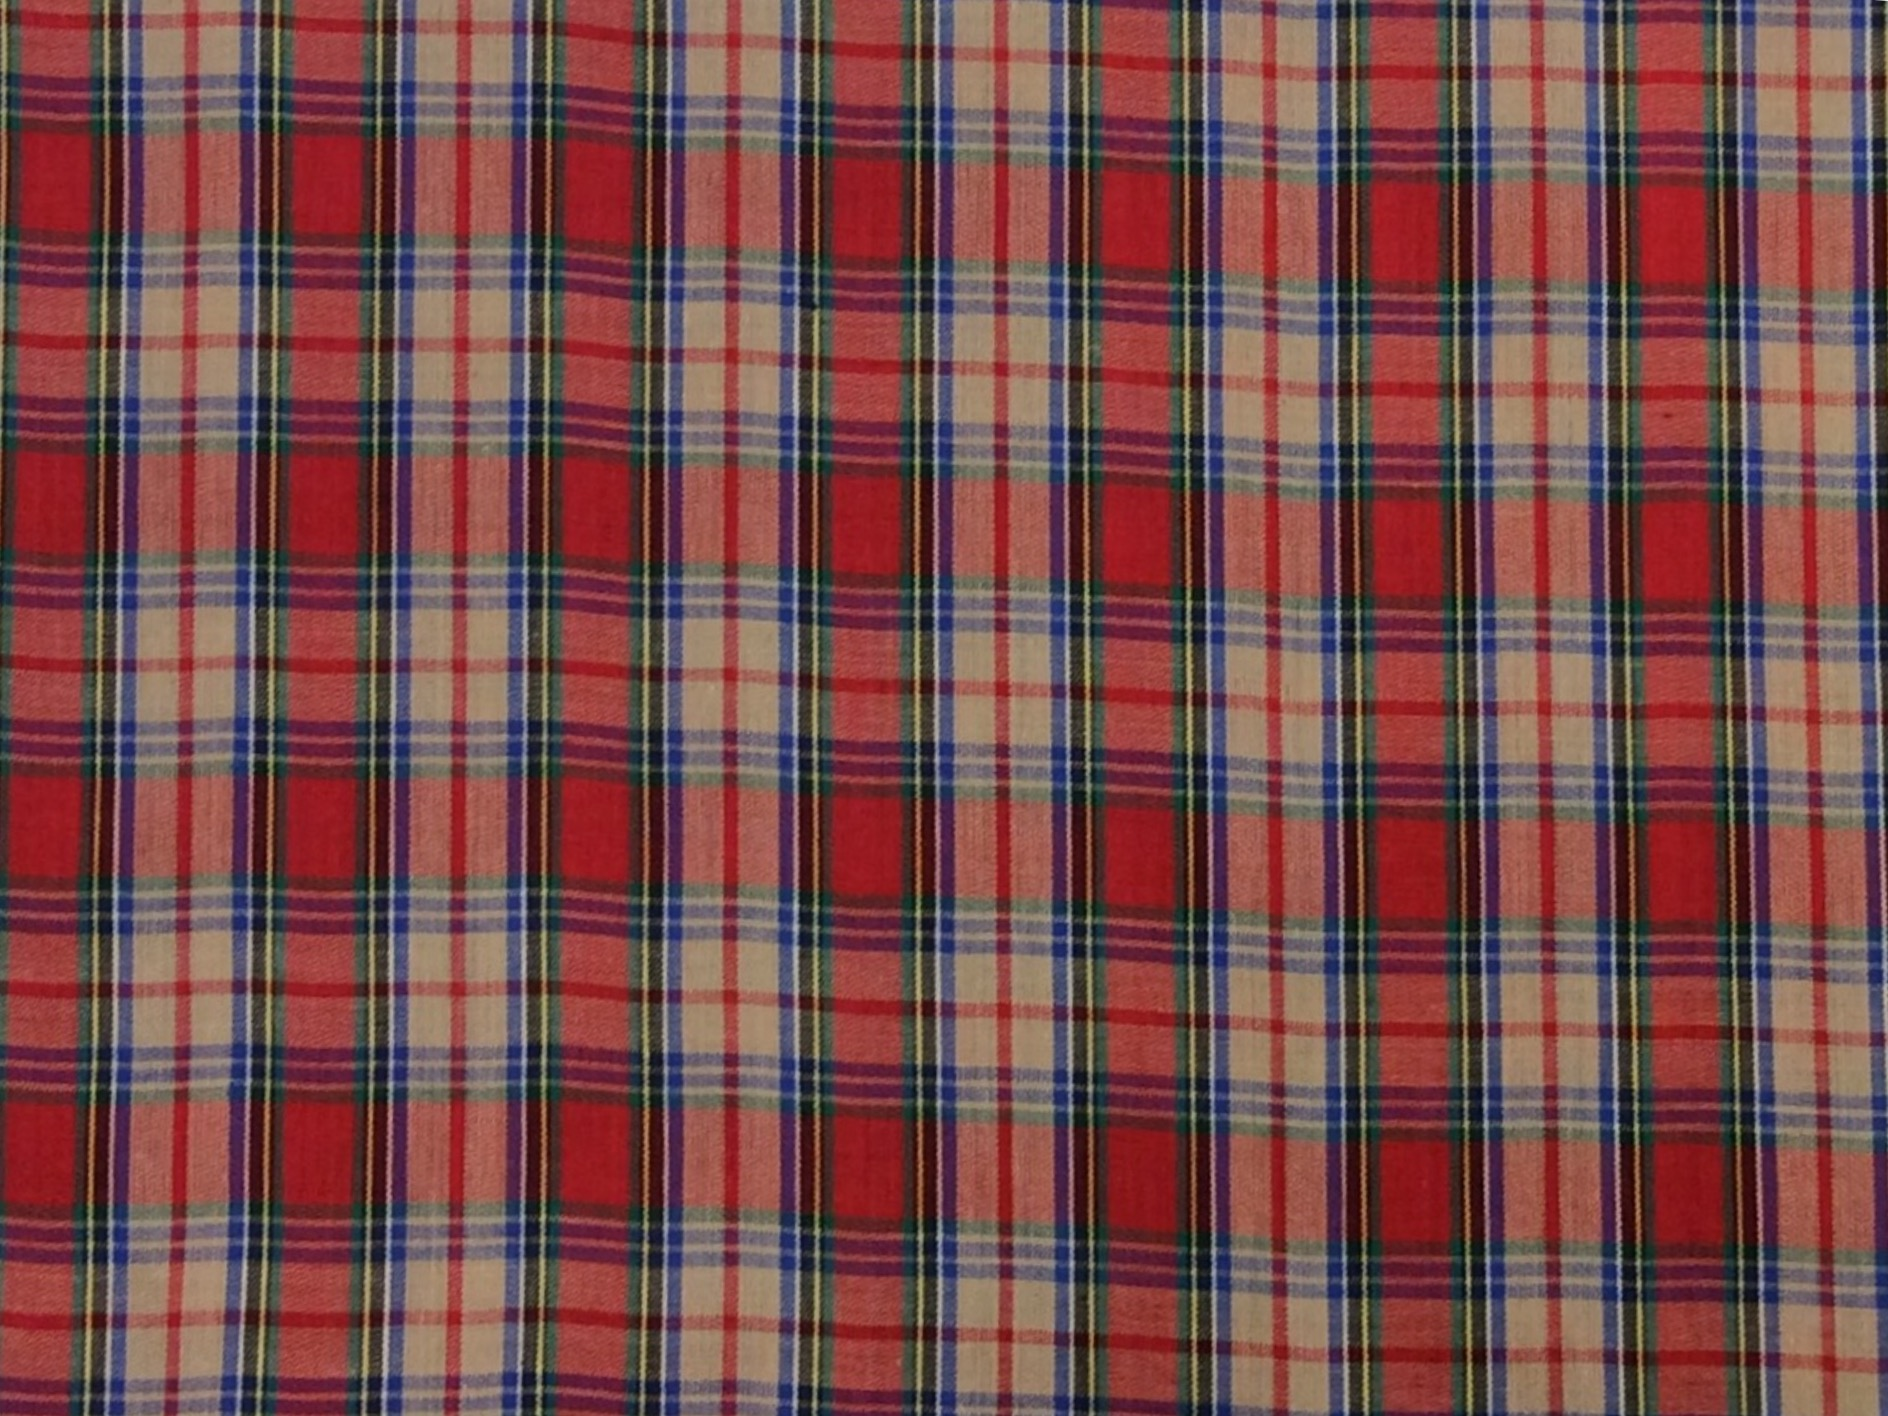 Tartan Plaid Mac Andrew MacAndrew Clan Apparel Fabric Yarn Dyed Fabric FTP19